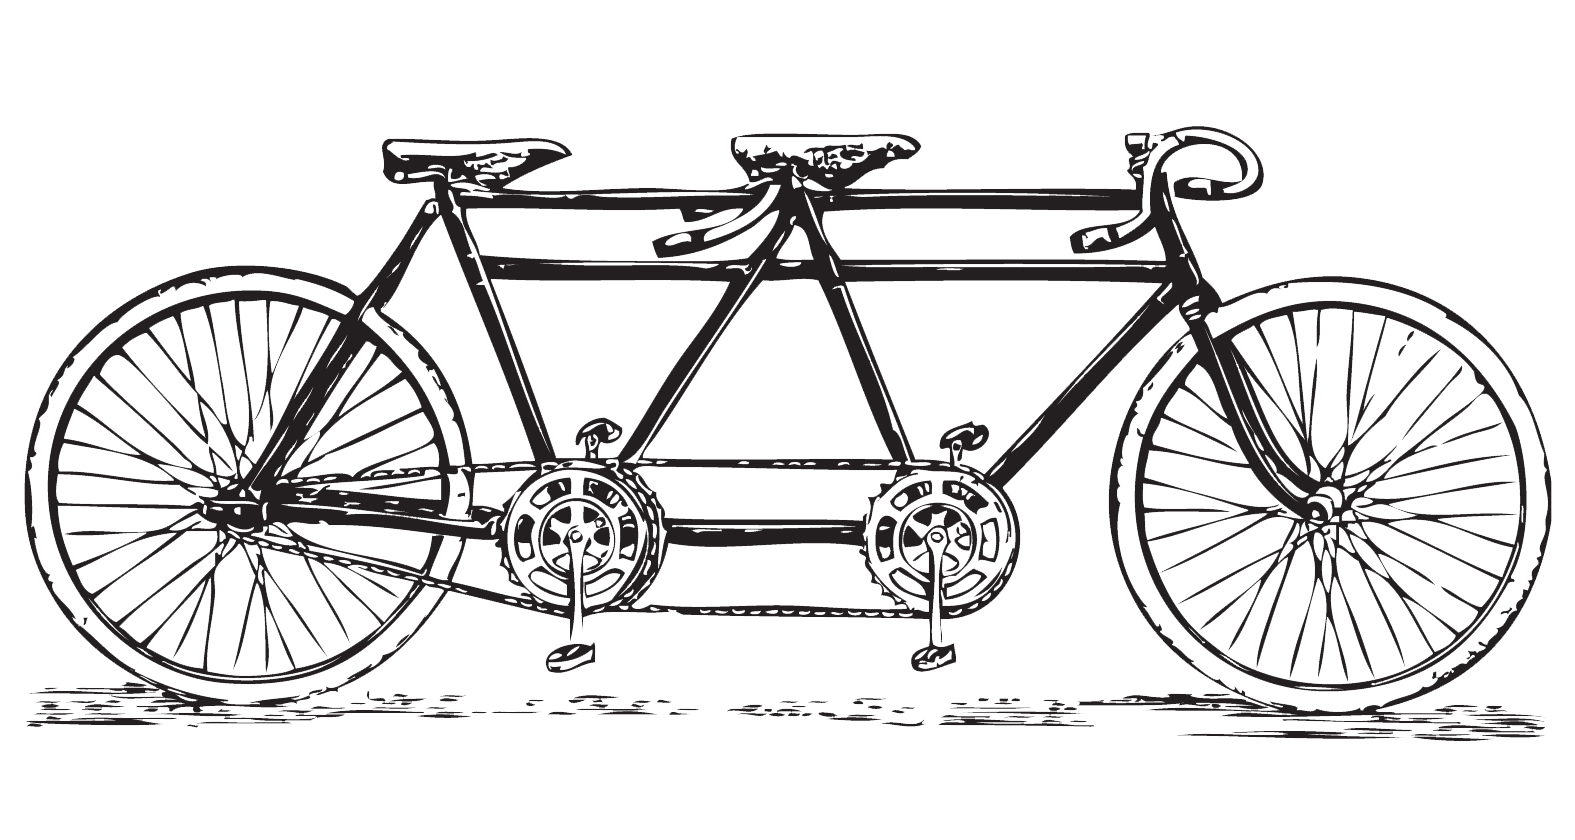 Free vintage tandem bicycle. Cycle clipart antique bike clipart free stock